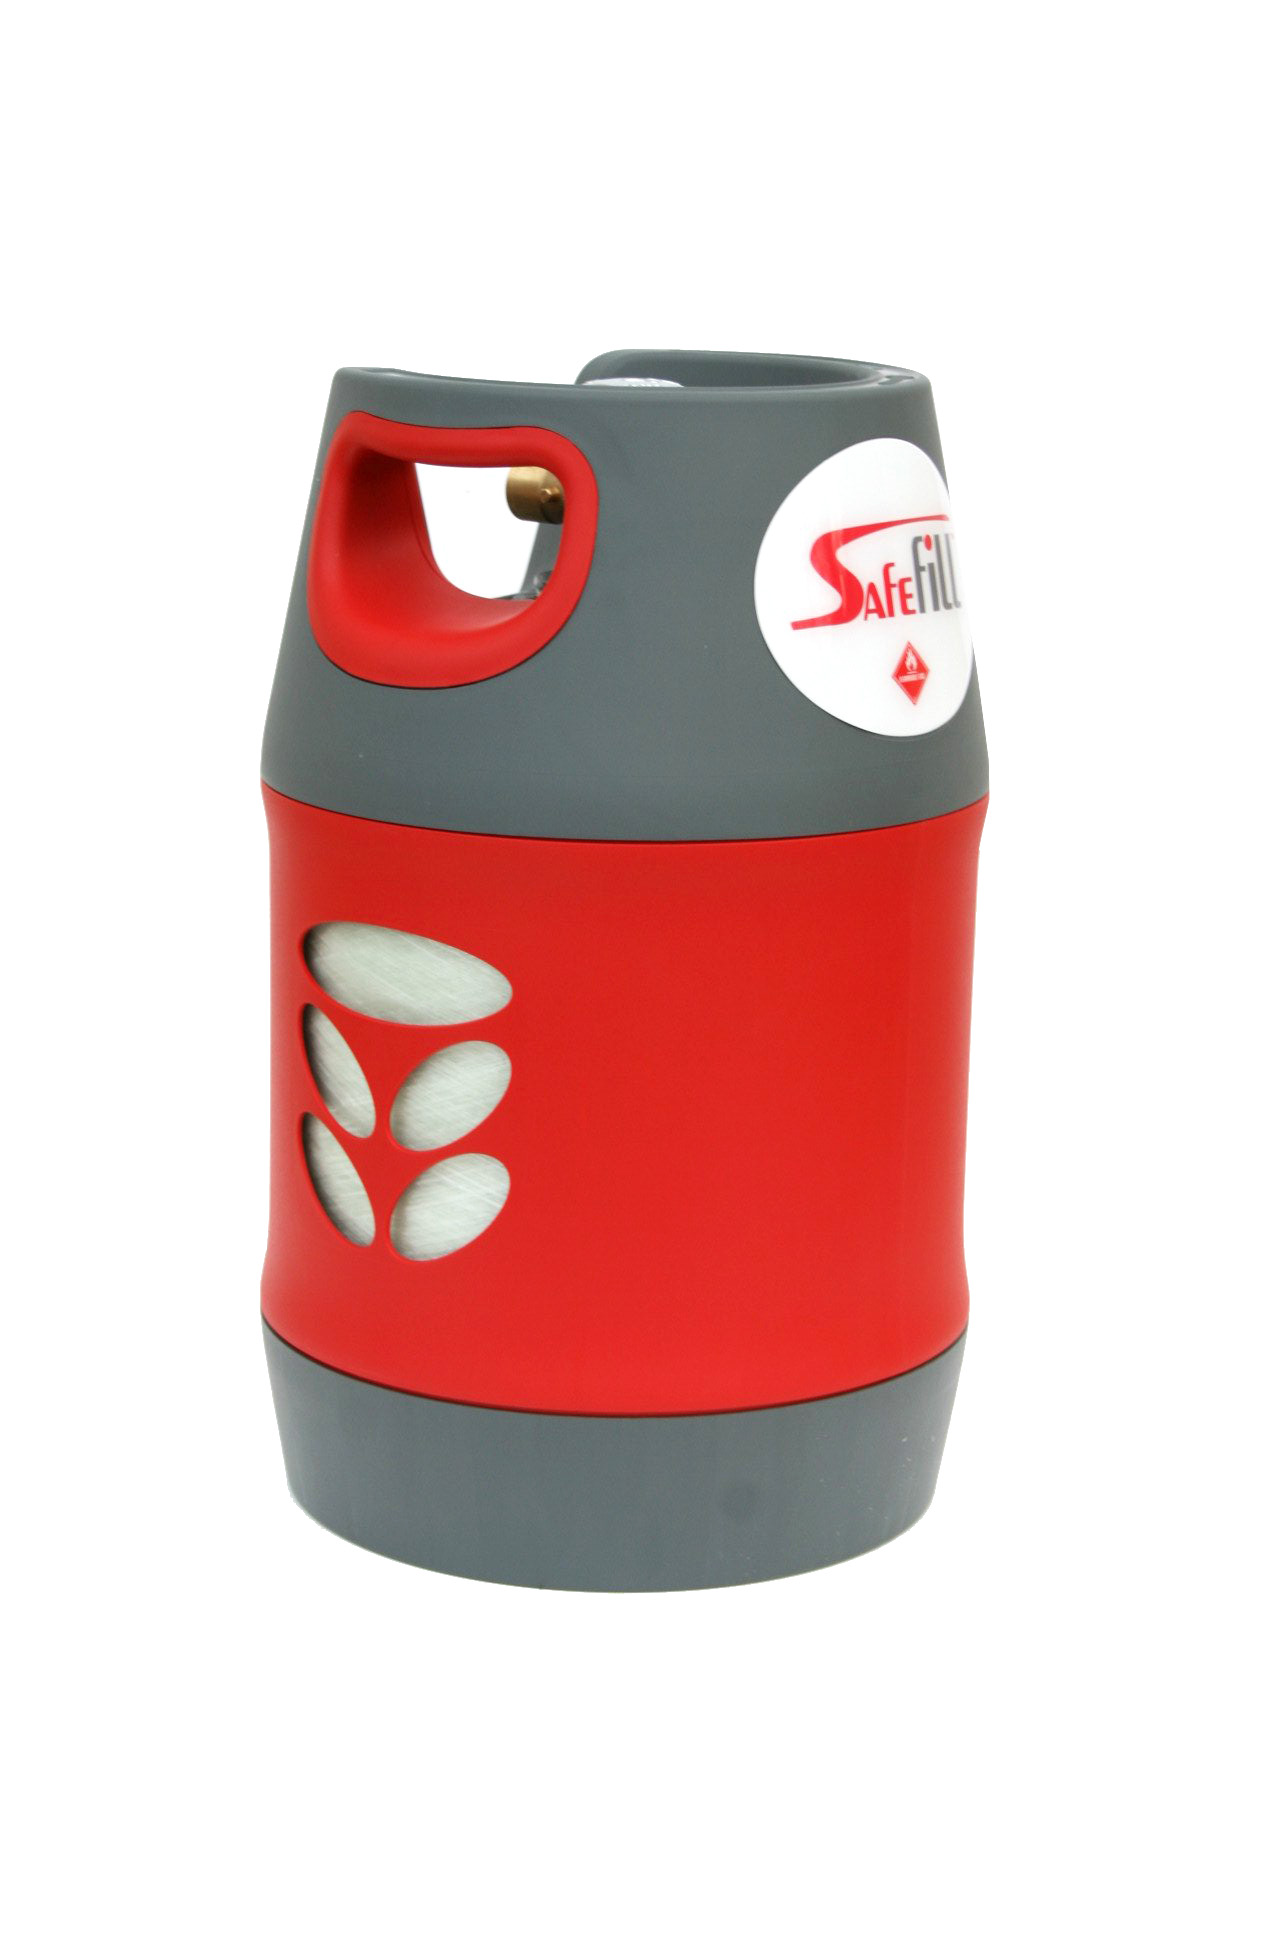 Safefill 7.5 kg refillable Propane cylinder